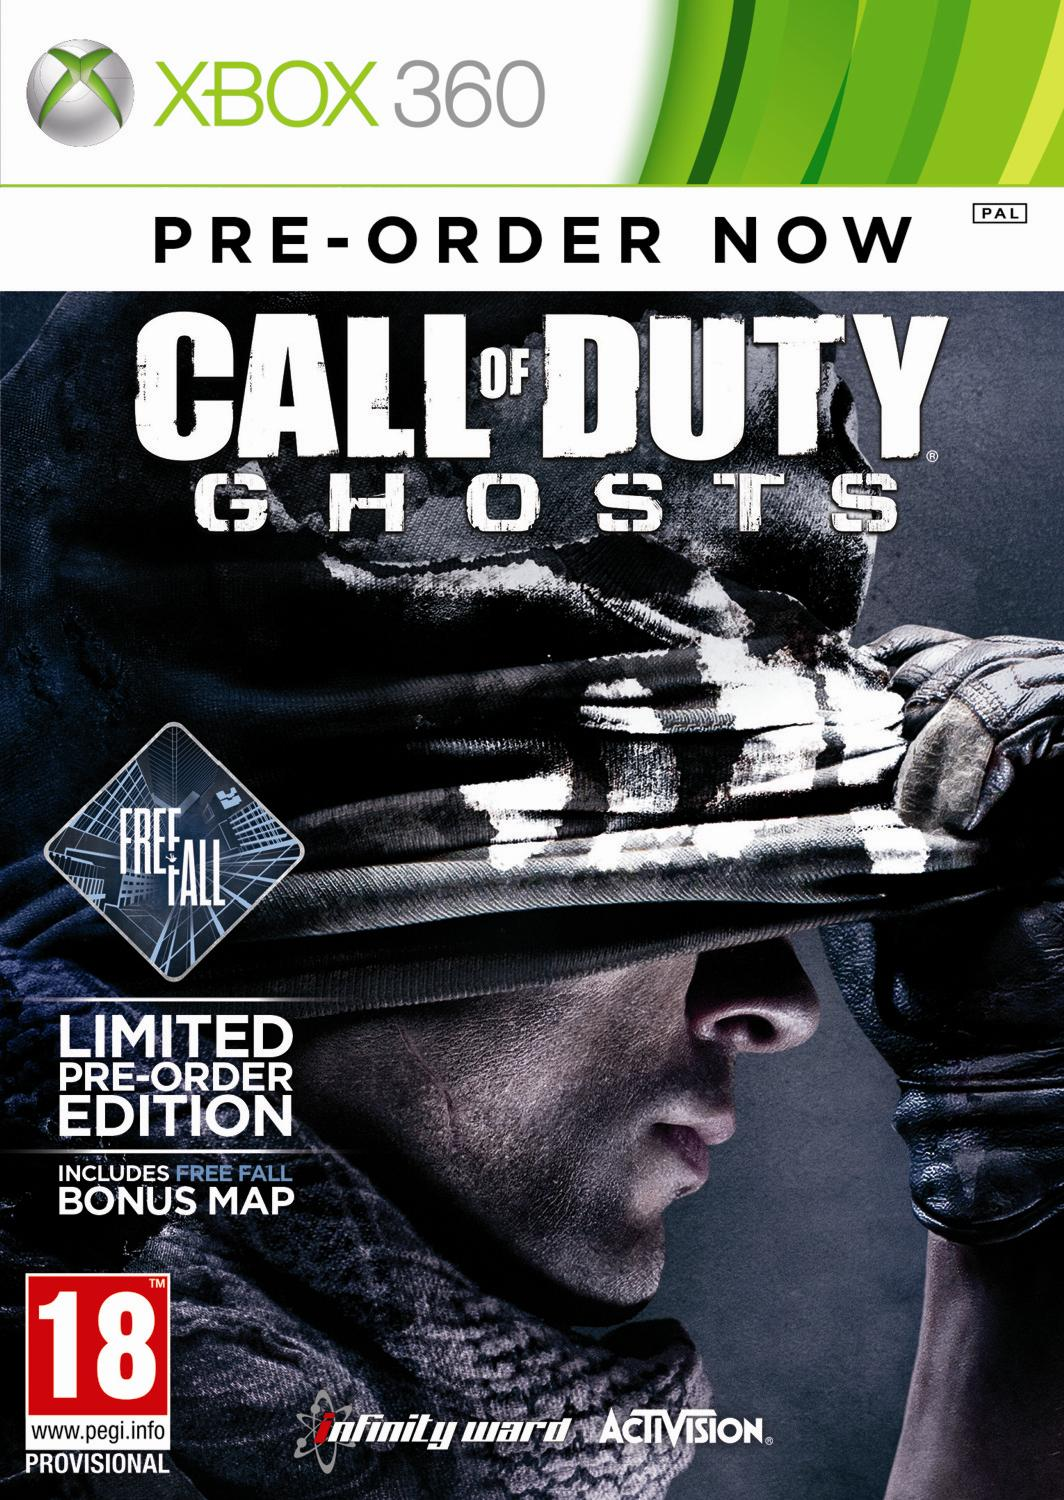 CALL OF DUTY: GHOSTS Limited Edition - X360